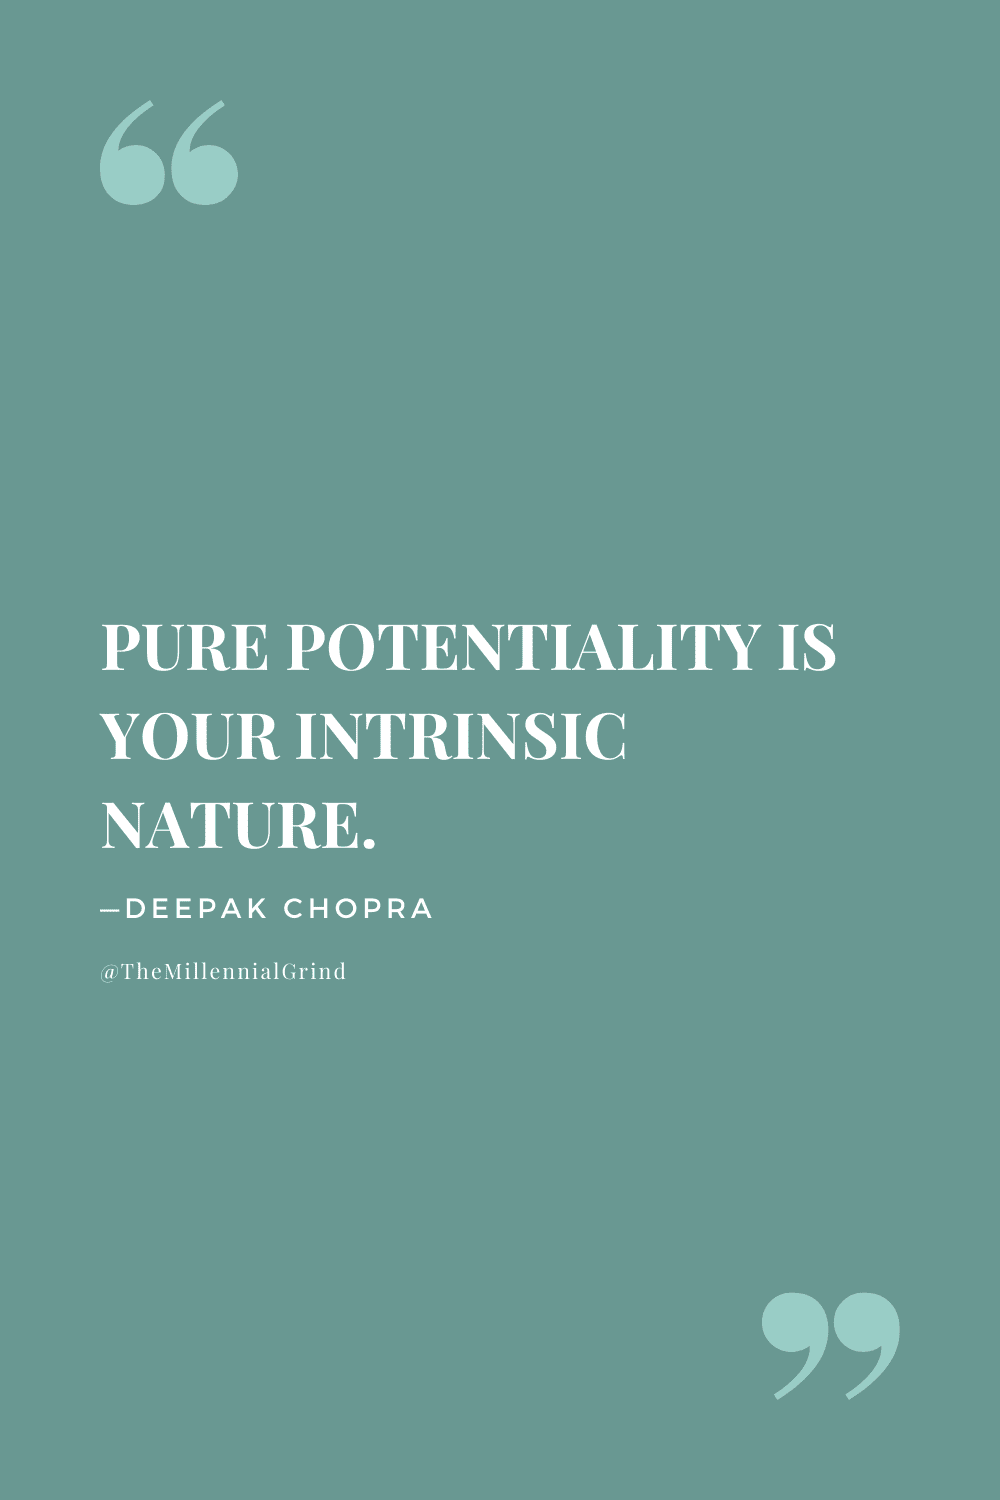 Quotes on The Law of Pure Potentiality